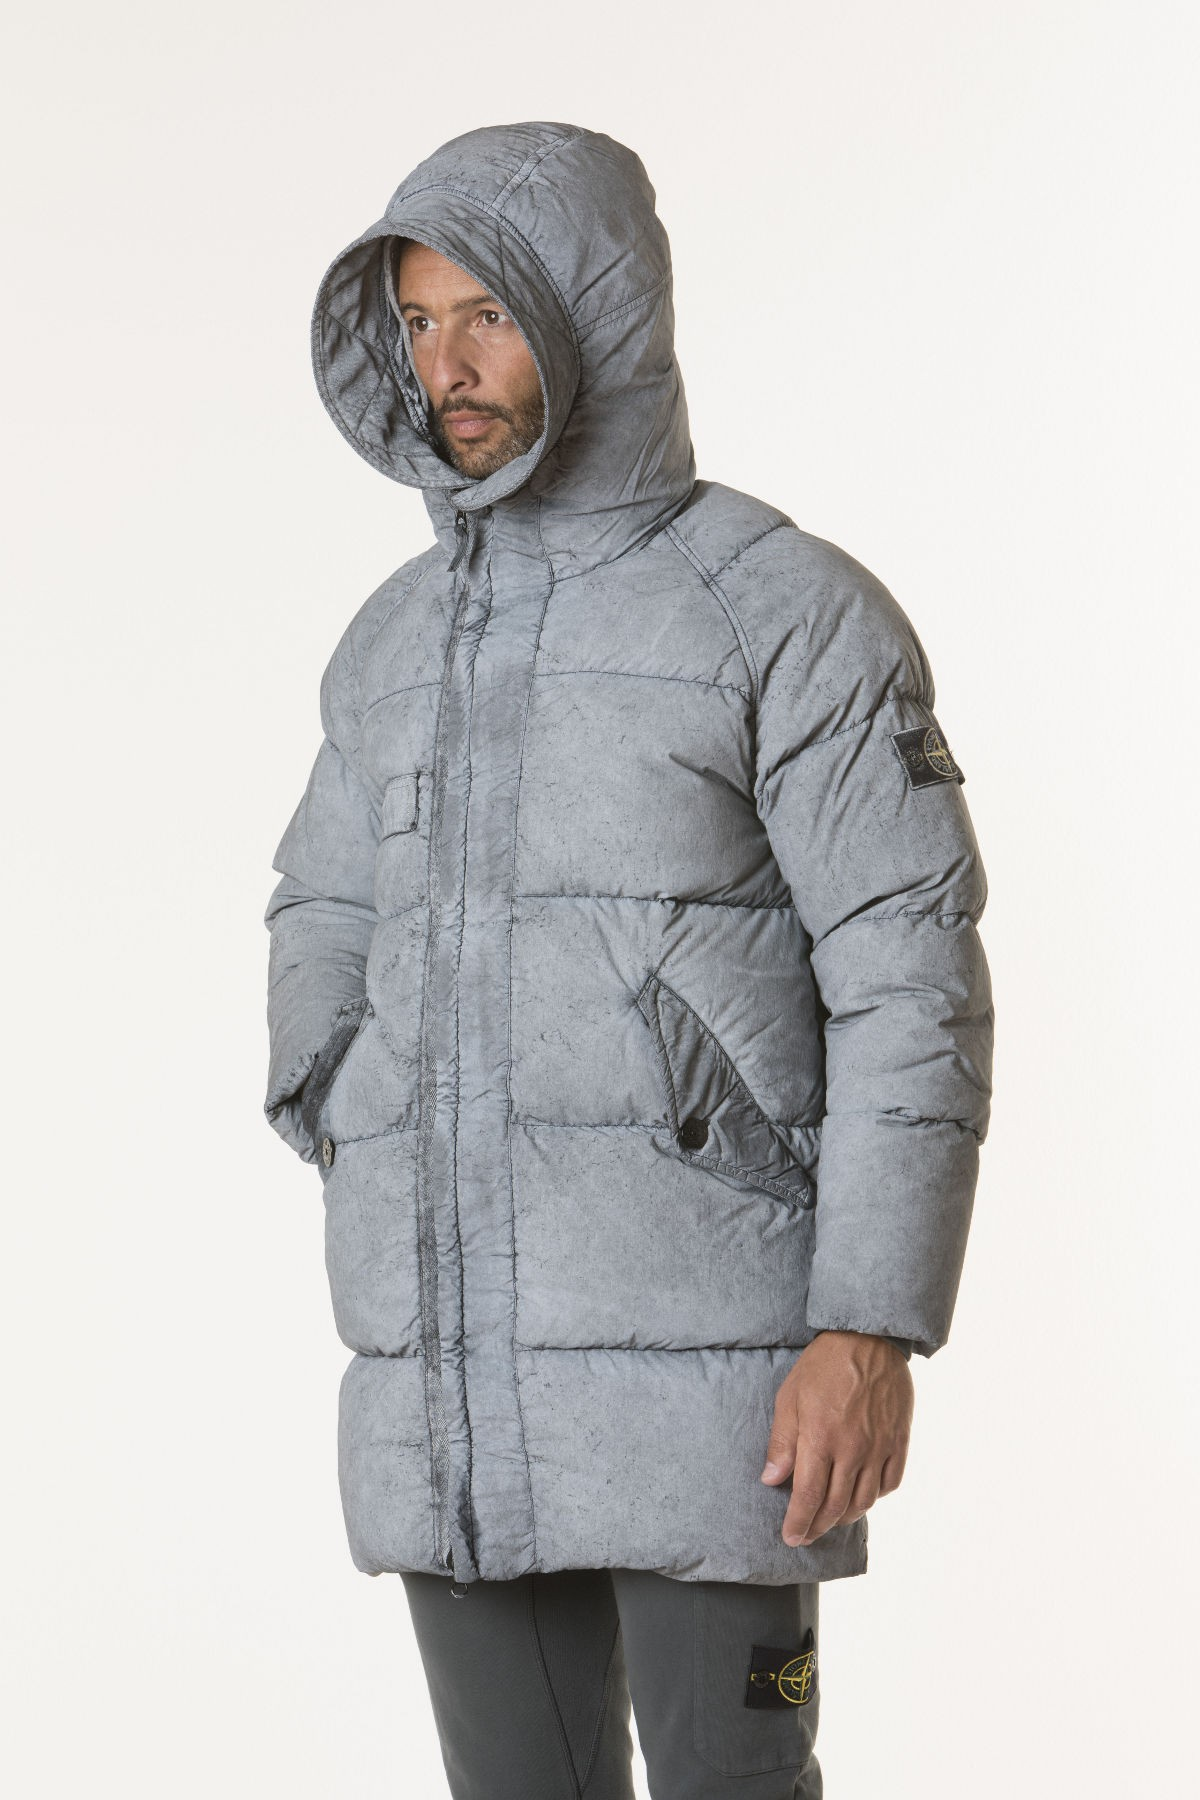 Jacket Tela Nylon Down With Dust Colour Frost Finish For